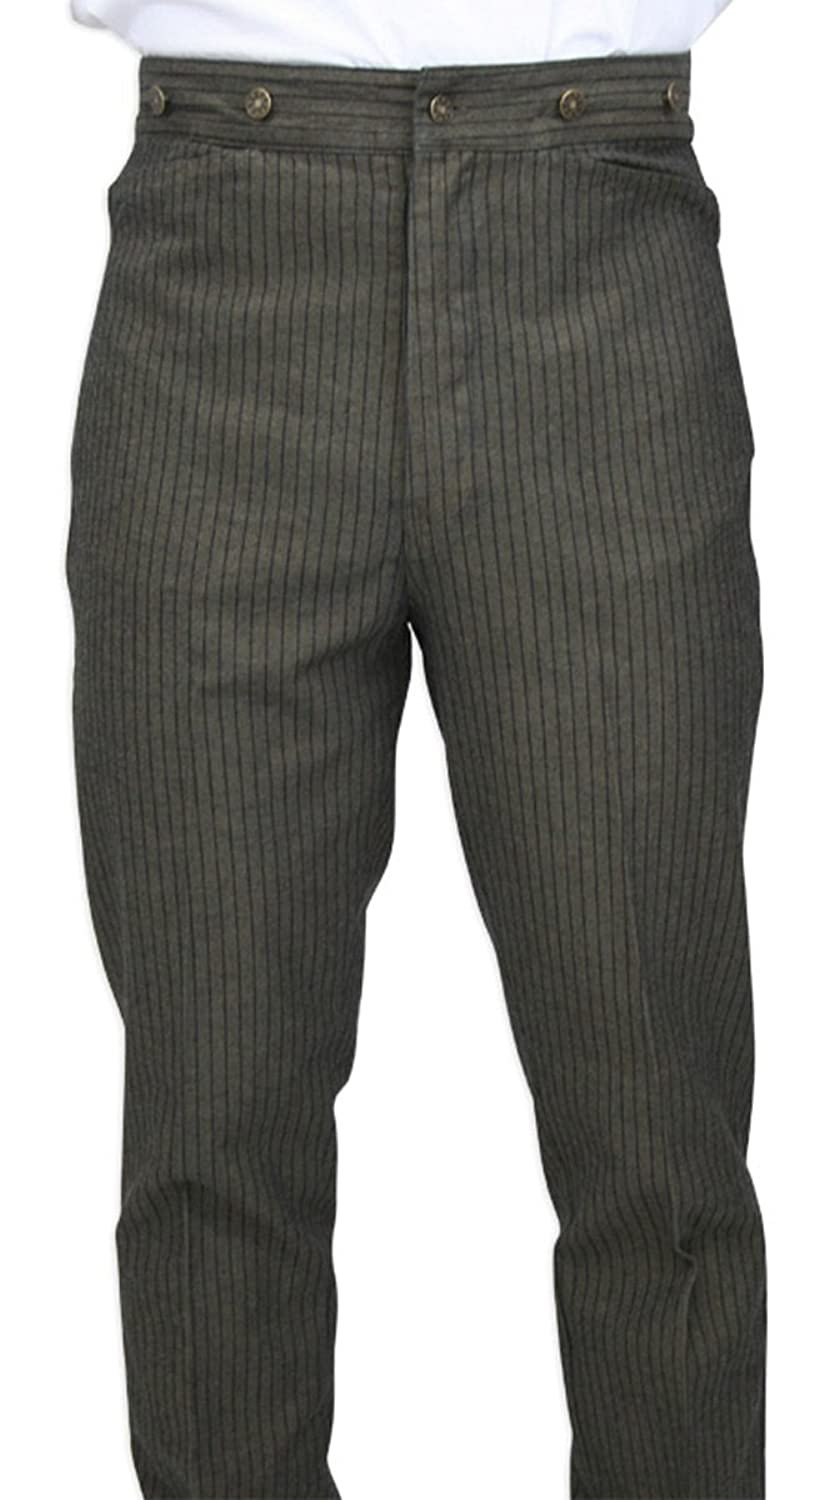 Men's Vintage Style Pants, Trousers, Jeans, Overalls High Waist Cotton Ludlow Striped Trousers $59.95 AT vintagedancer.com